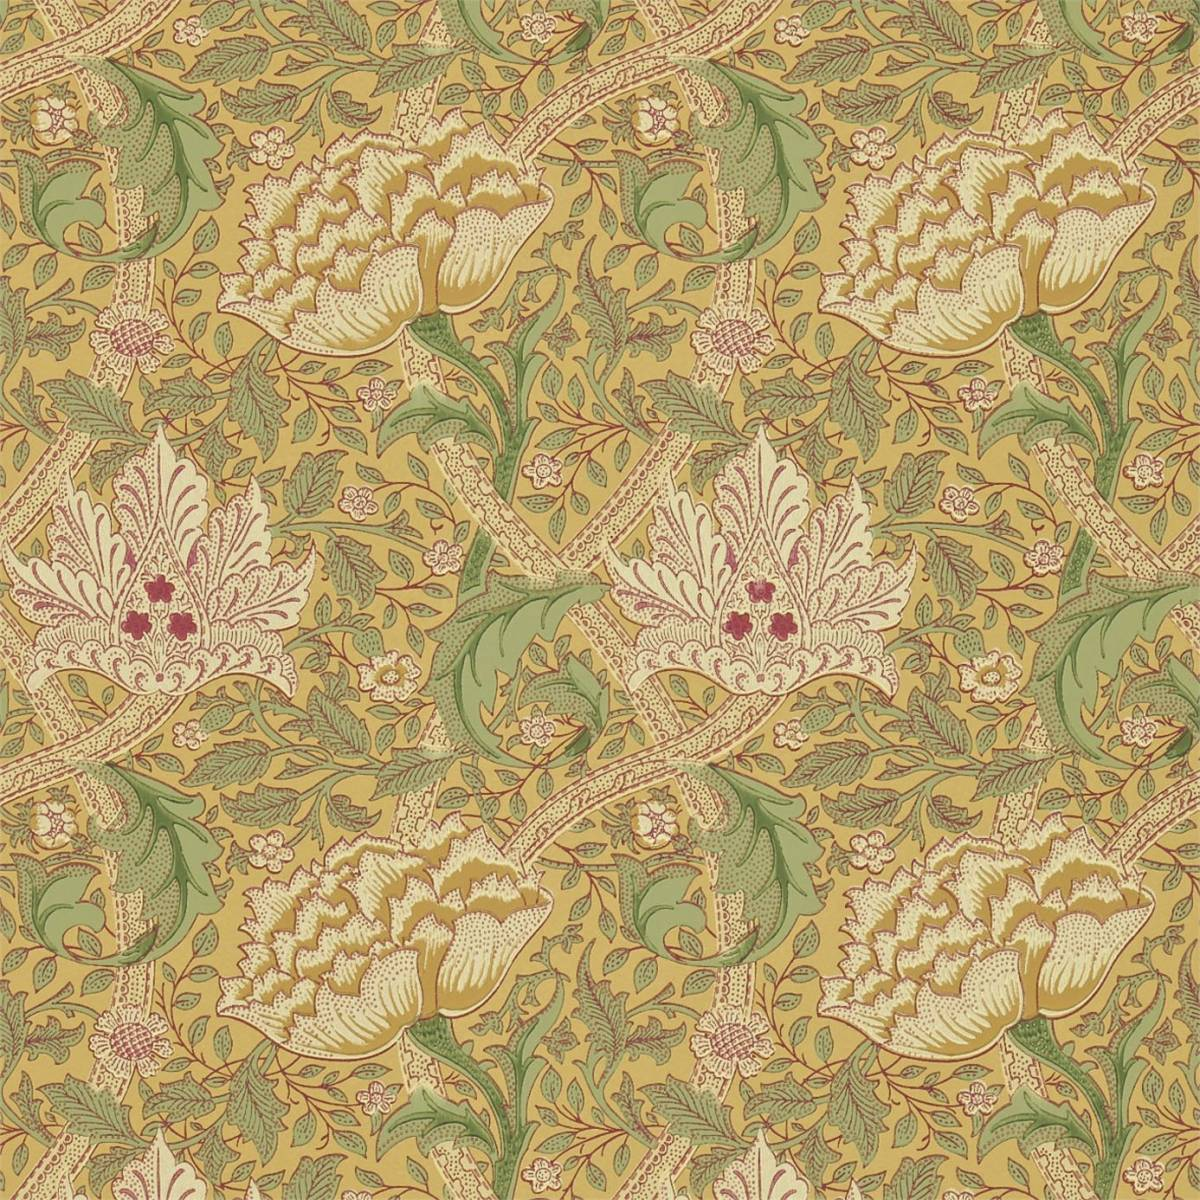 Windrush Wallpaper - Gold/Thyme (210494) - William Morris & Co Compendium II Wallpapers Collection